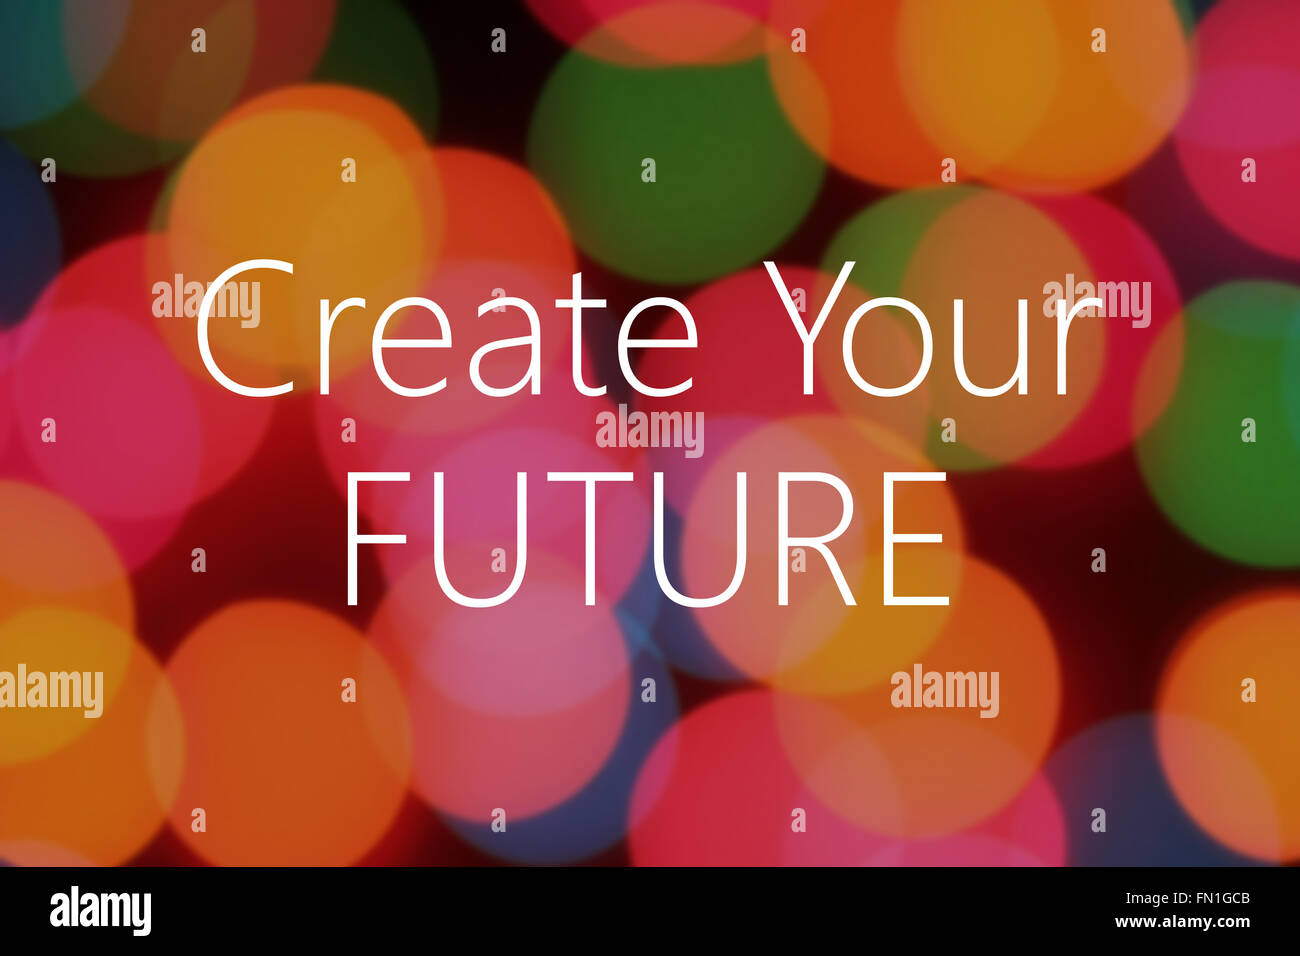 Create your future text on colorful bokeh background - Stock Image